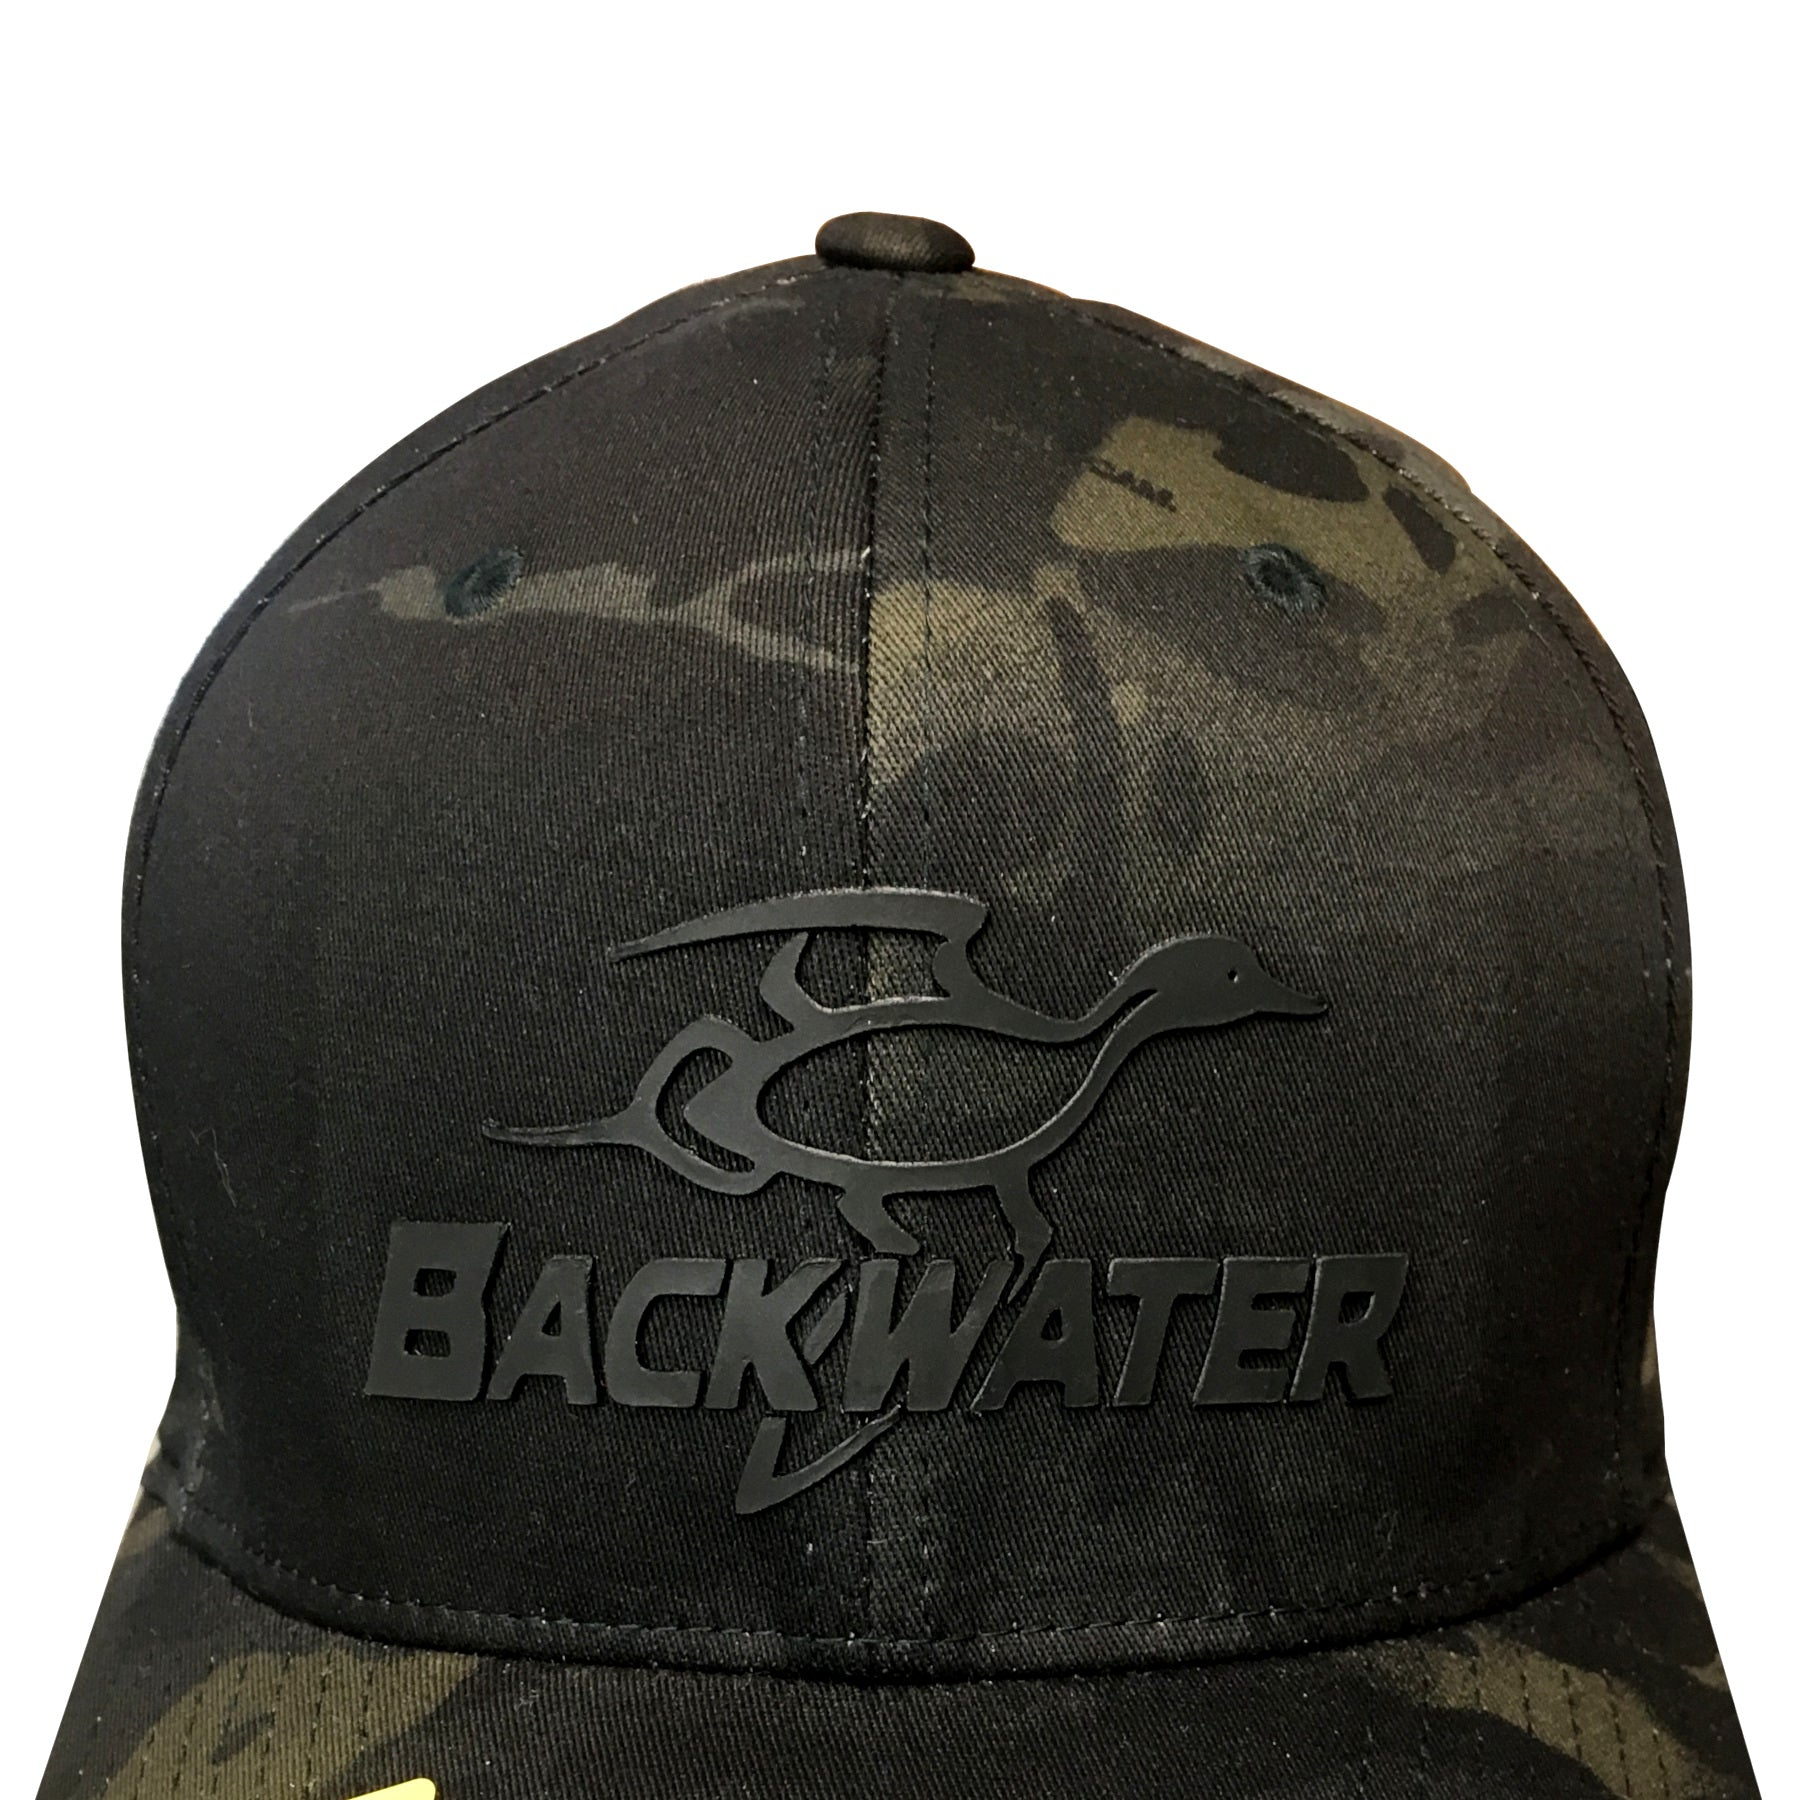 Hat Backwater Multicam Black Flexfit Logo Detail